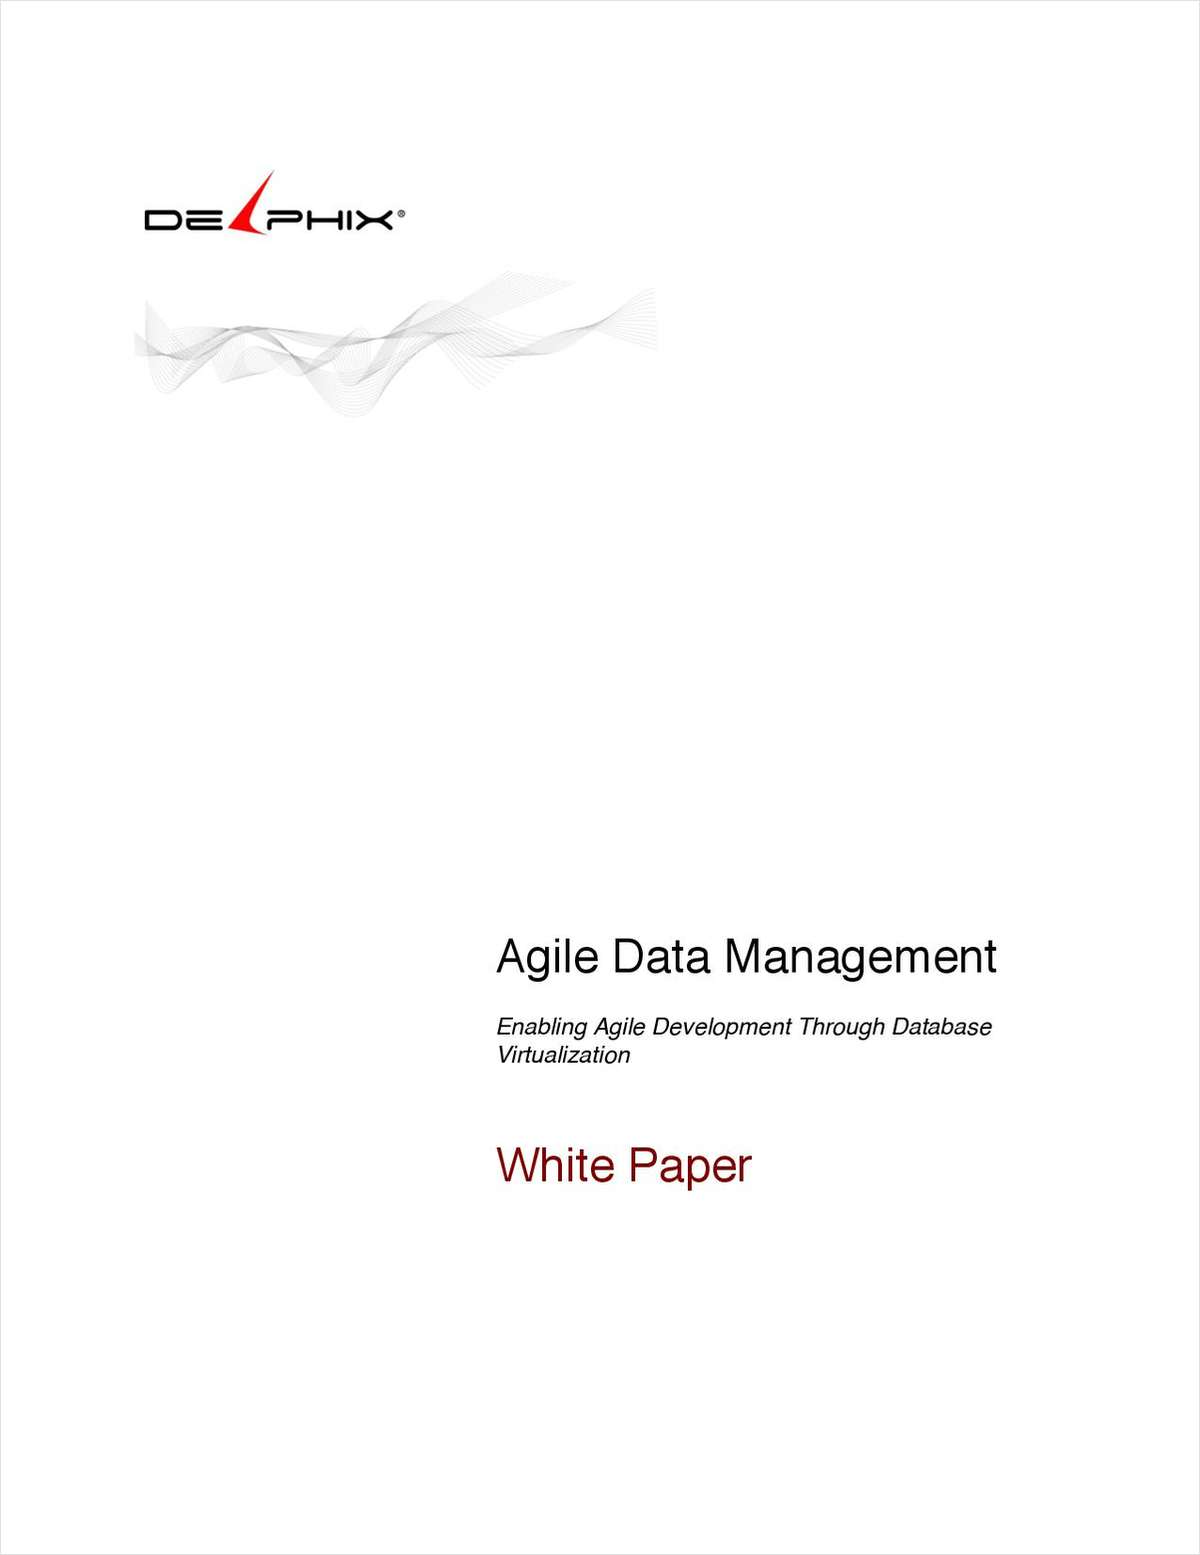 Agile Data Management: Enabling Agile Development Through Database Virtualization